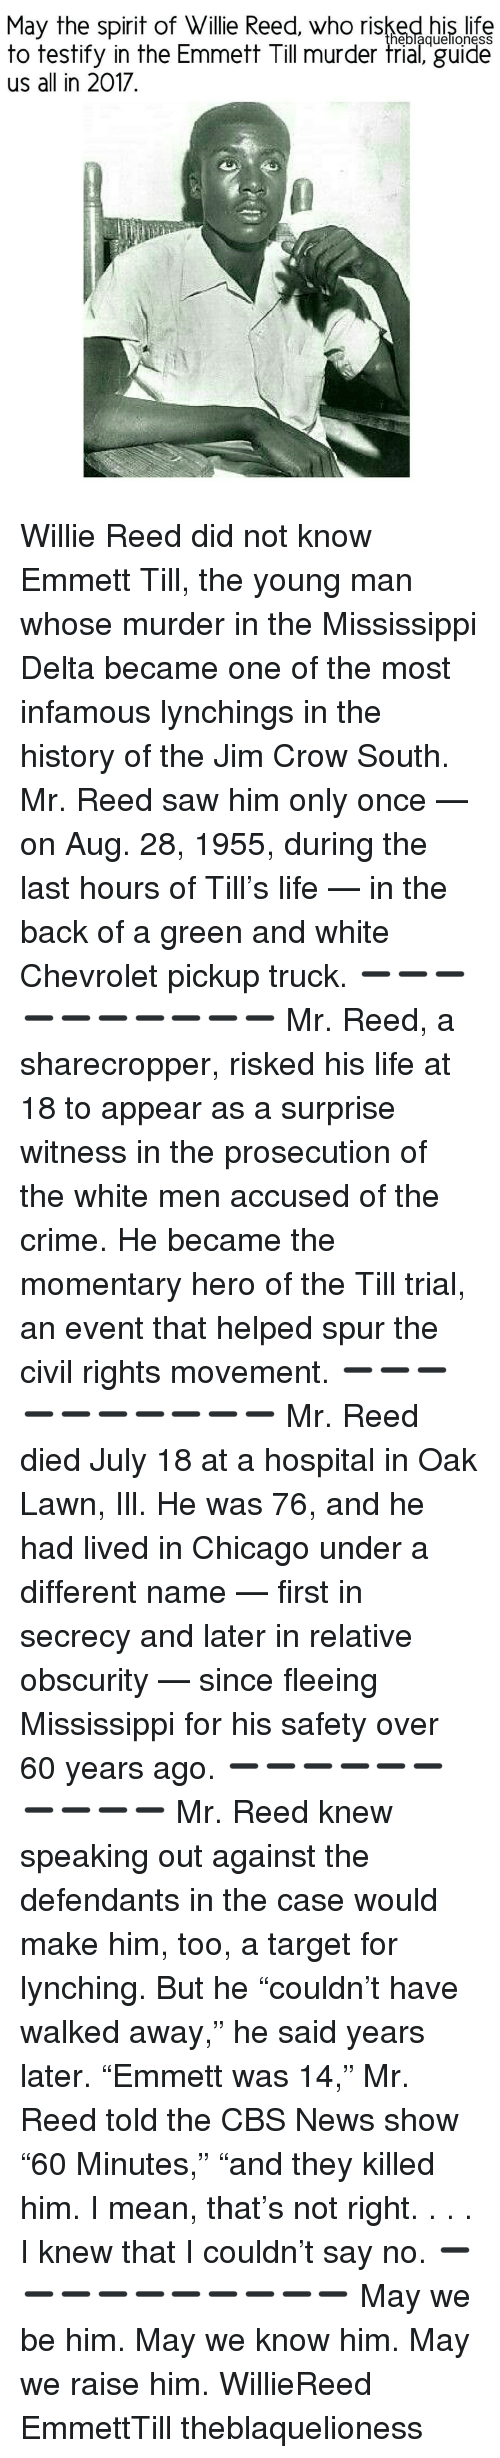 """willies: May the spirit of Willie Reed, who risked his life  heblaquellonesS  to testify in the Emmett Till murder trial, guide  us all in 2017 Willie Reed did not know Emmett Till, the young man whose murder in the Mississippi Delta became one of the most infamous lynchings in the history of the Jim Crow South. Mr. Reed saw him only once — on Aug. 28, 1955, during the last hours of Till's life — in the back of a green and white Chevrolet pickup truck. ➖➖➖➖➖➖➖➖➖➖ Mr. Reed, a sharecropper, risked his life at 18 to appear as a surprise witness in the prosecution of the white men accused of the crime. He became the momentary hero of the Till trial, an event that helped spur the civil rights movement. ➖➖➖➖➖➖➖➖➖➖ Mr. Reed died July 18 at a hospital in Oak Lawn, Ill. He was 76, and he had lived in Chicago under a different name — first in secrecy and later in relative obscurity — since fleeing Mississippi for his safety over 60 years ago. ➖➖➖➖➖➖➖➖➖➖ Mr. Reed knew speaking out against the defendants in the case would make him, too, a target for lynching. But he """"couldn't have walked away,"""" he said years later. """"Emmett was 14,"""" Mr. Reed told the CBS News show """"60 Minutes,"""" """"and they killed him. I mean, that's not right. . . . I knew that I couldn't say no. ➖➖➖➖➖➖➖➖➖➖ May we be him. May we know him. May we raise him. WillieReed EmmettTill theblaquelioness"""